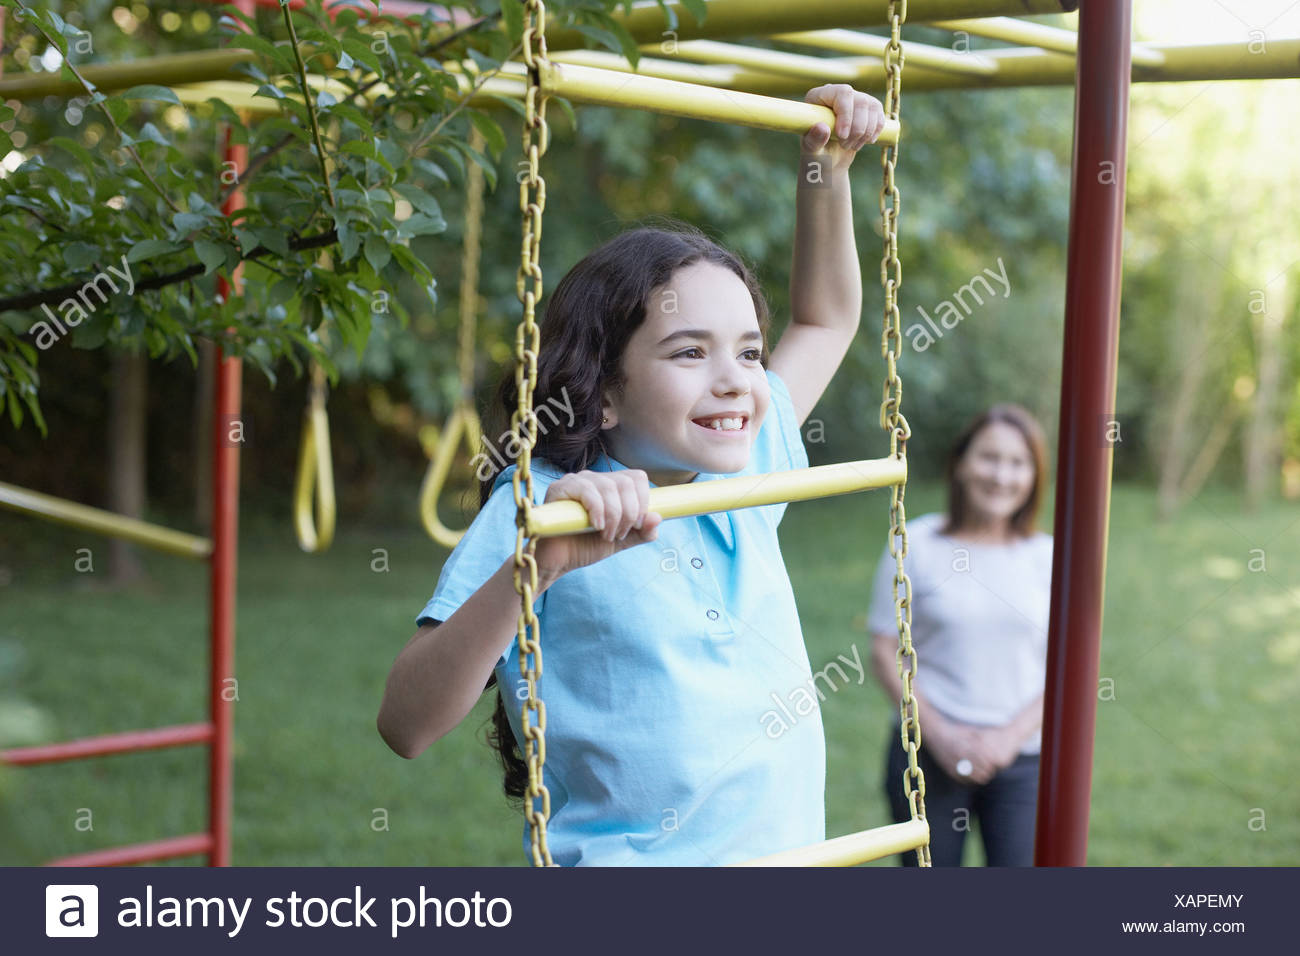 Young girl outdoors at playground climbing with senior woman in background smiling - Stock Image